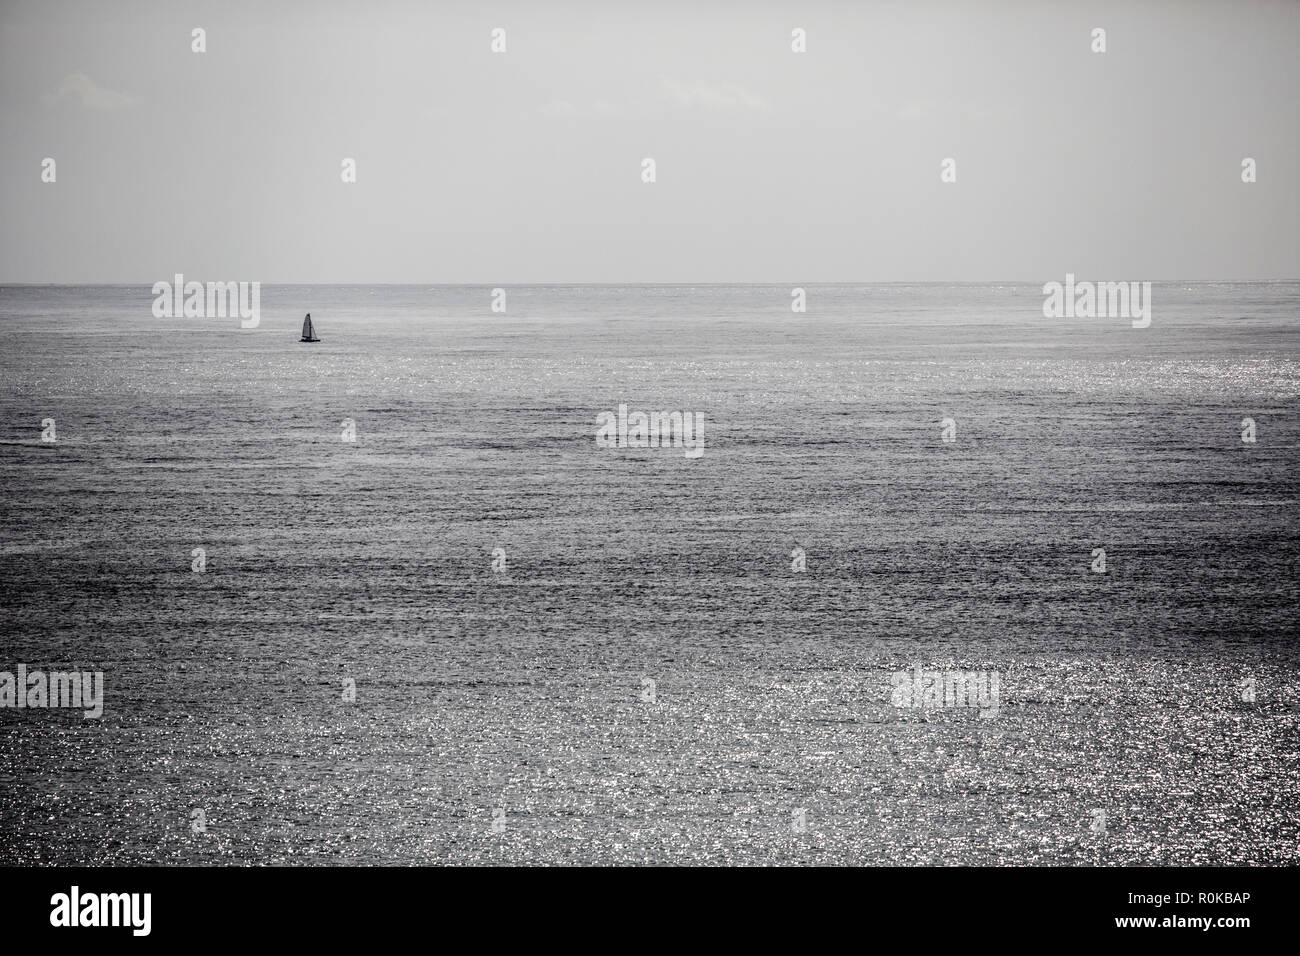 lonely Sailboat crossing the Gulf, New Zealand - Stock Image